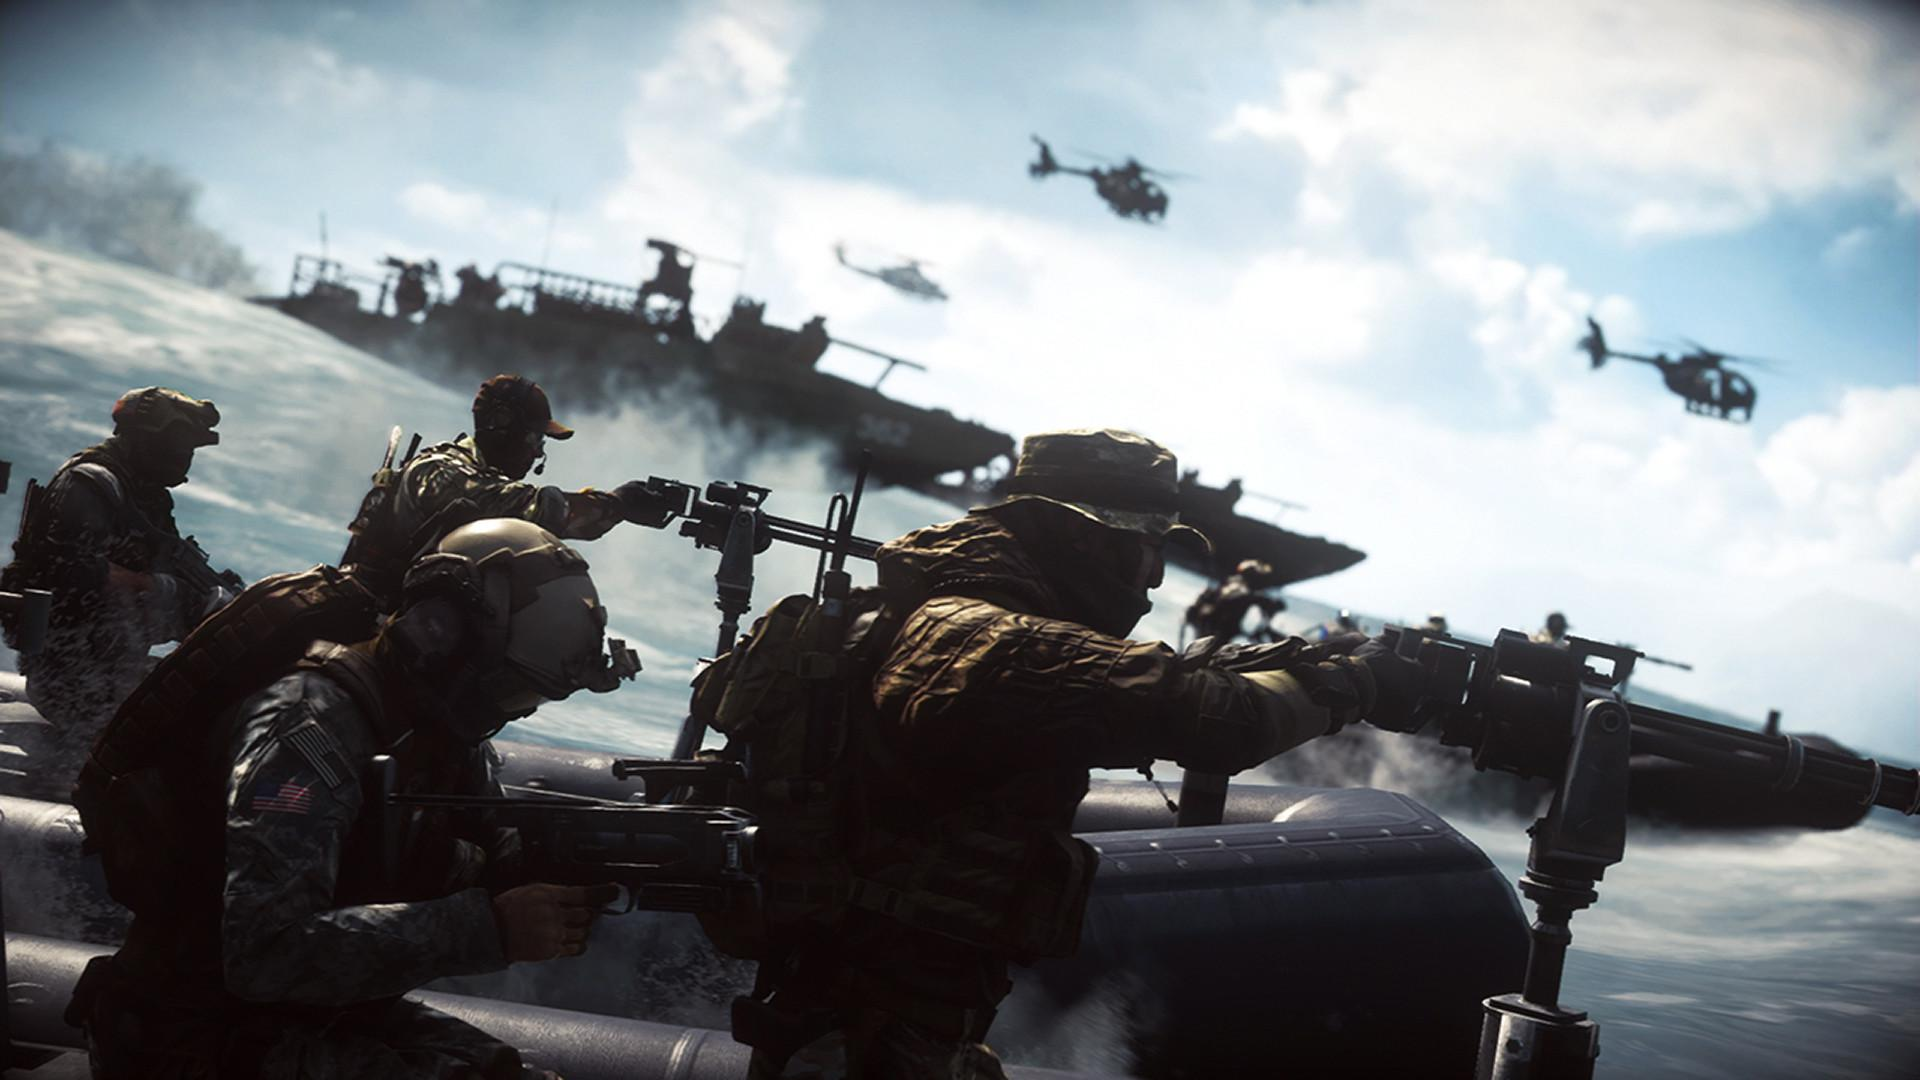 Battlefield 4 features combat in land, sea and air with a plethora of vehicles to choose from